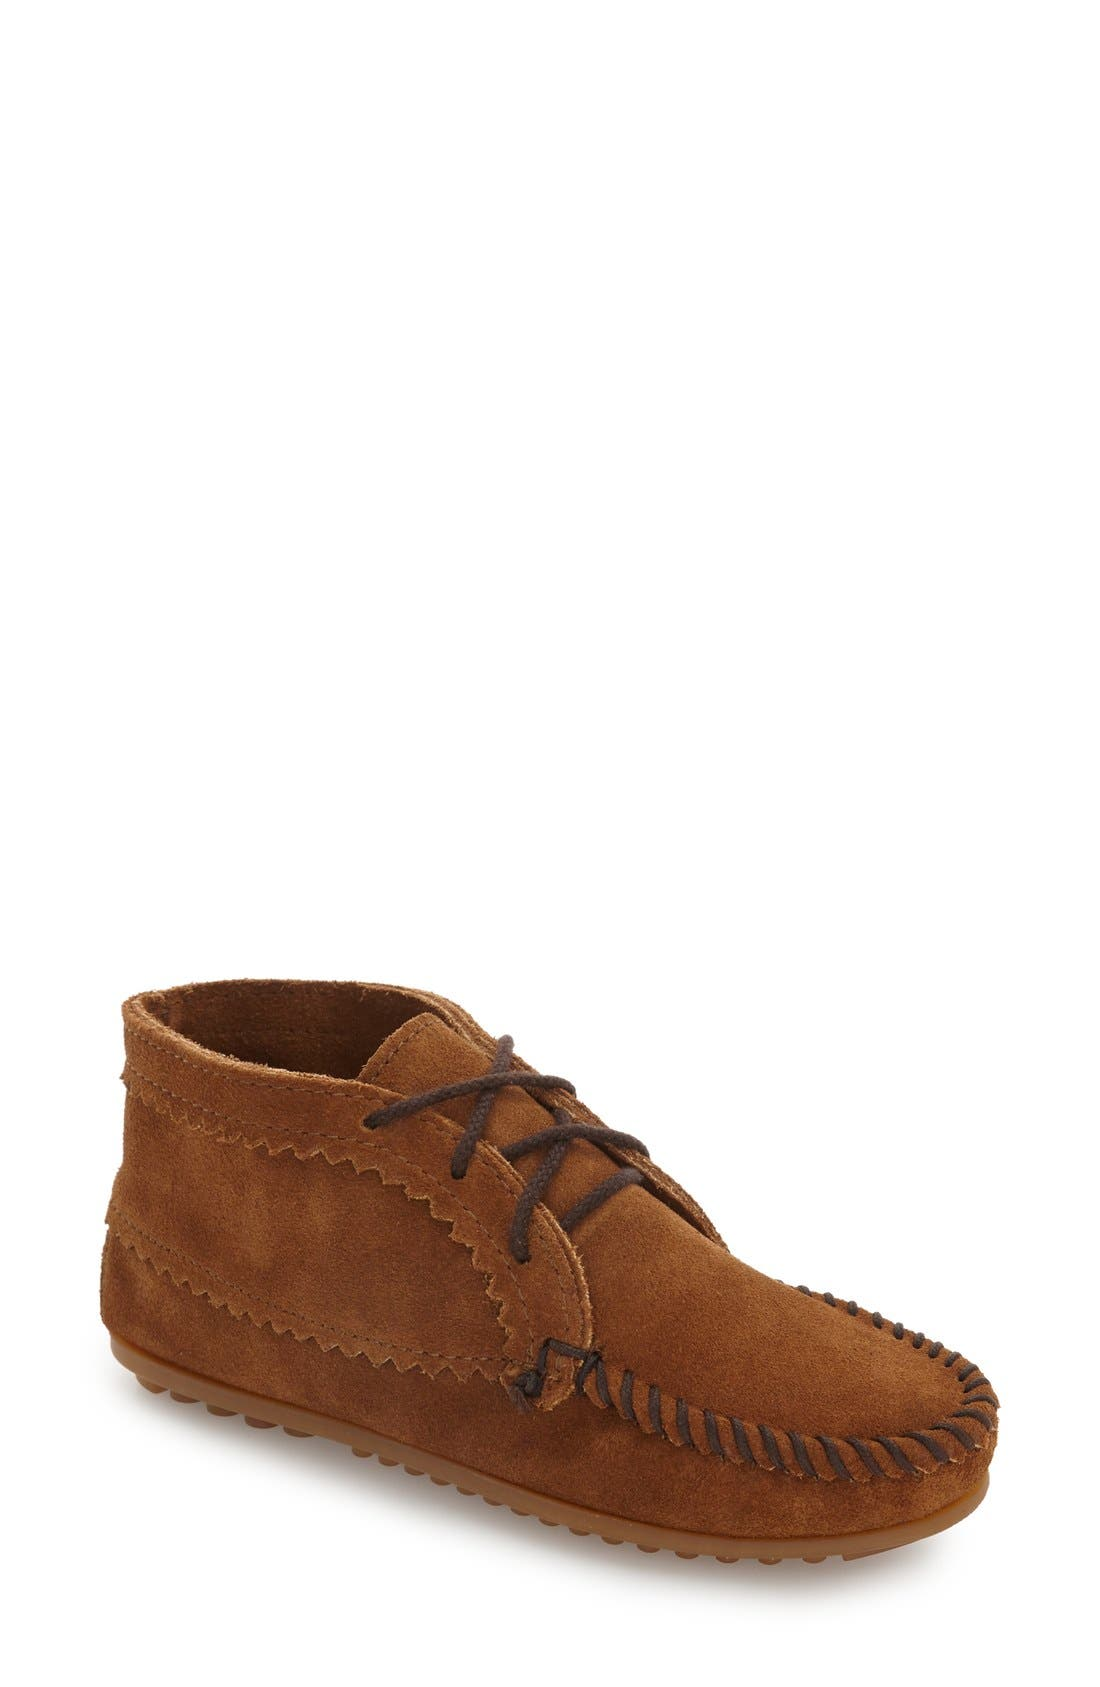 Chukka Moccasin Boot,                             Main thumbnail 1, color,                             DUSTY BROWN